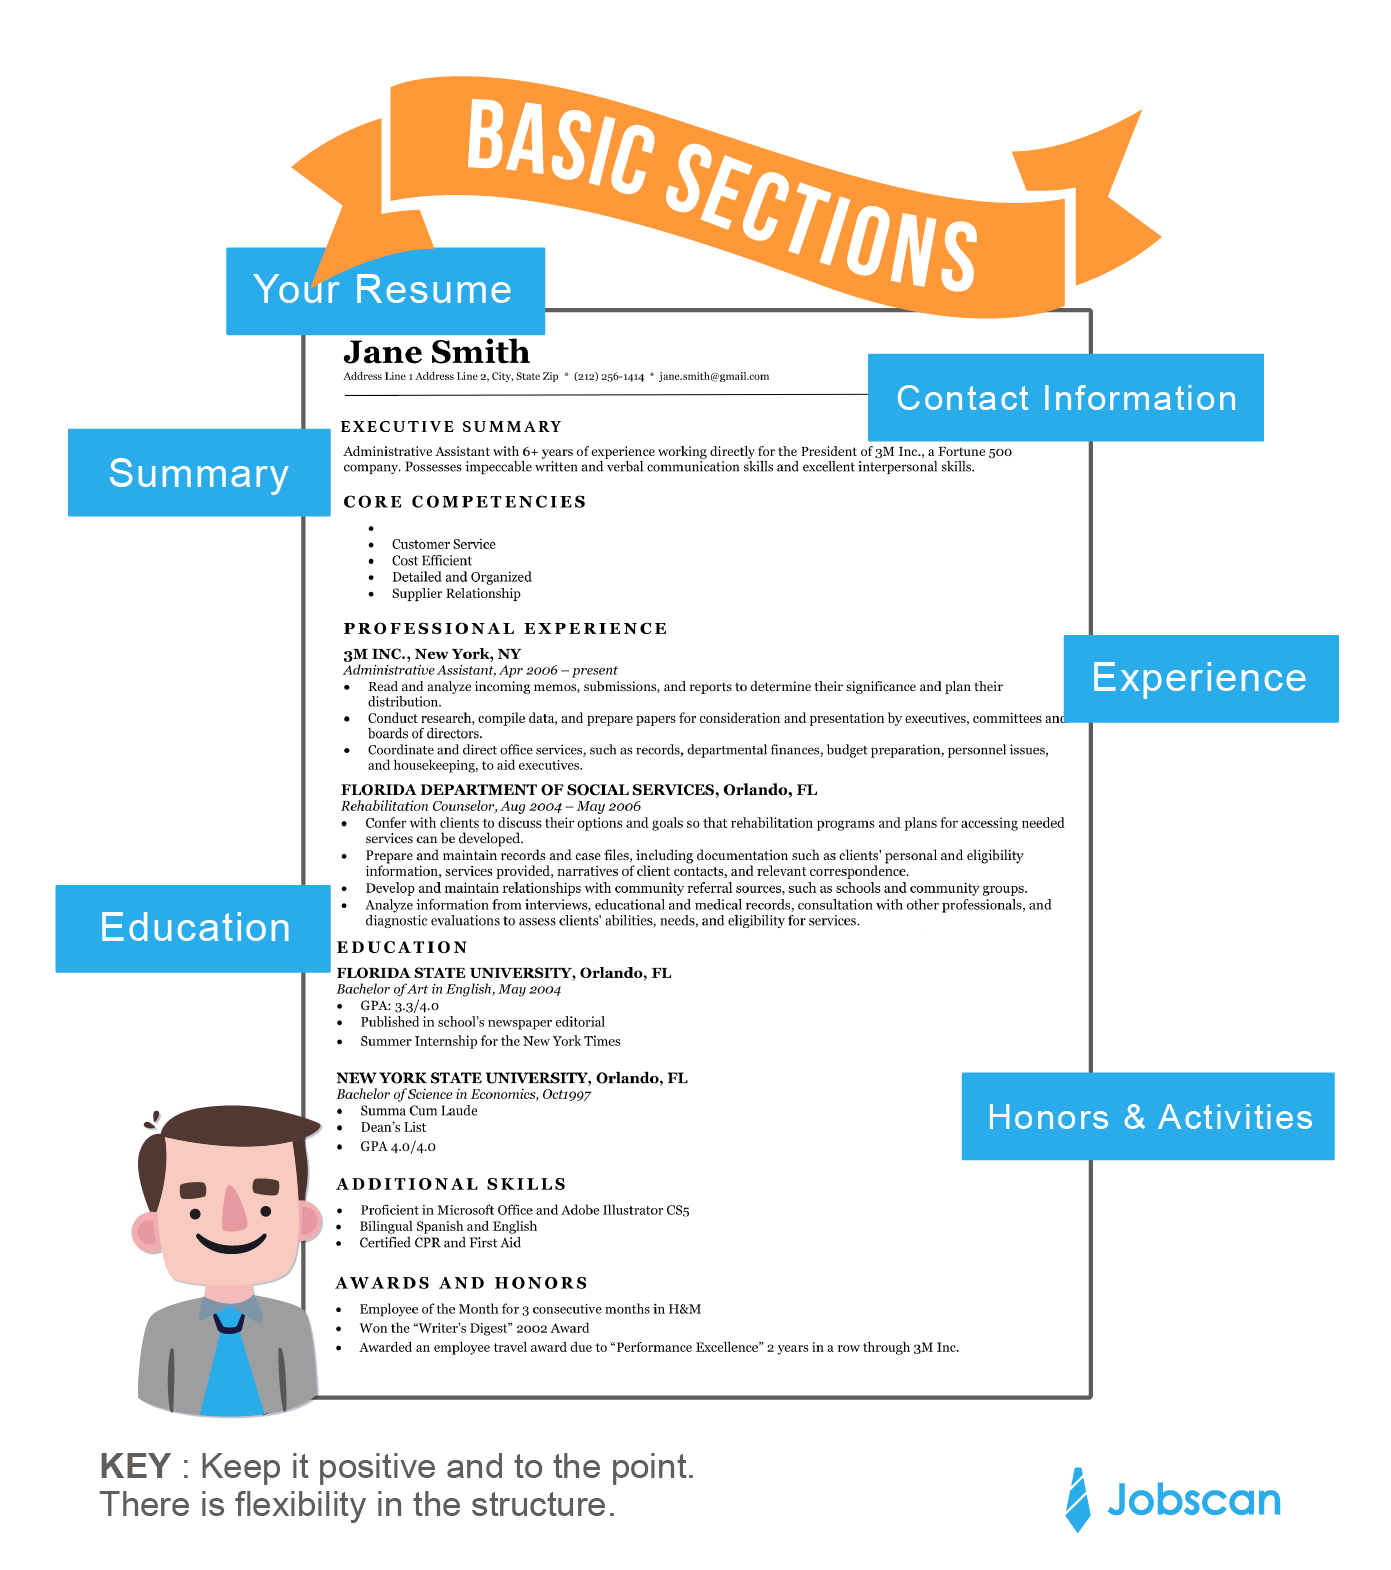 Illustration Of The Basic Sections Of A Chronological Resume